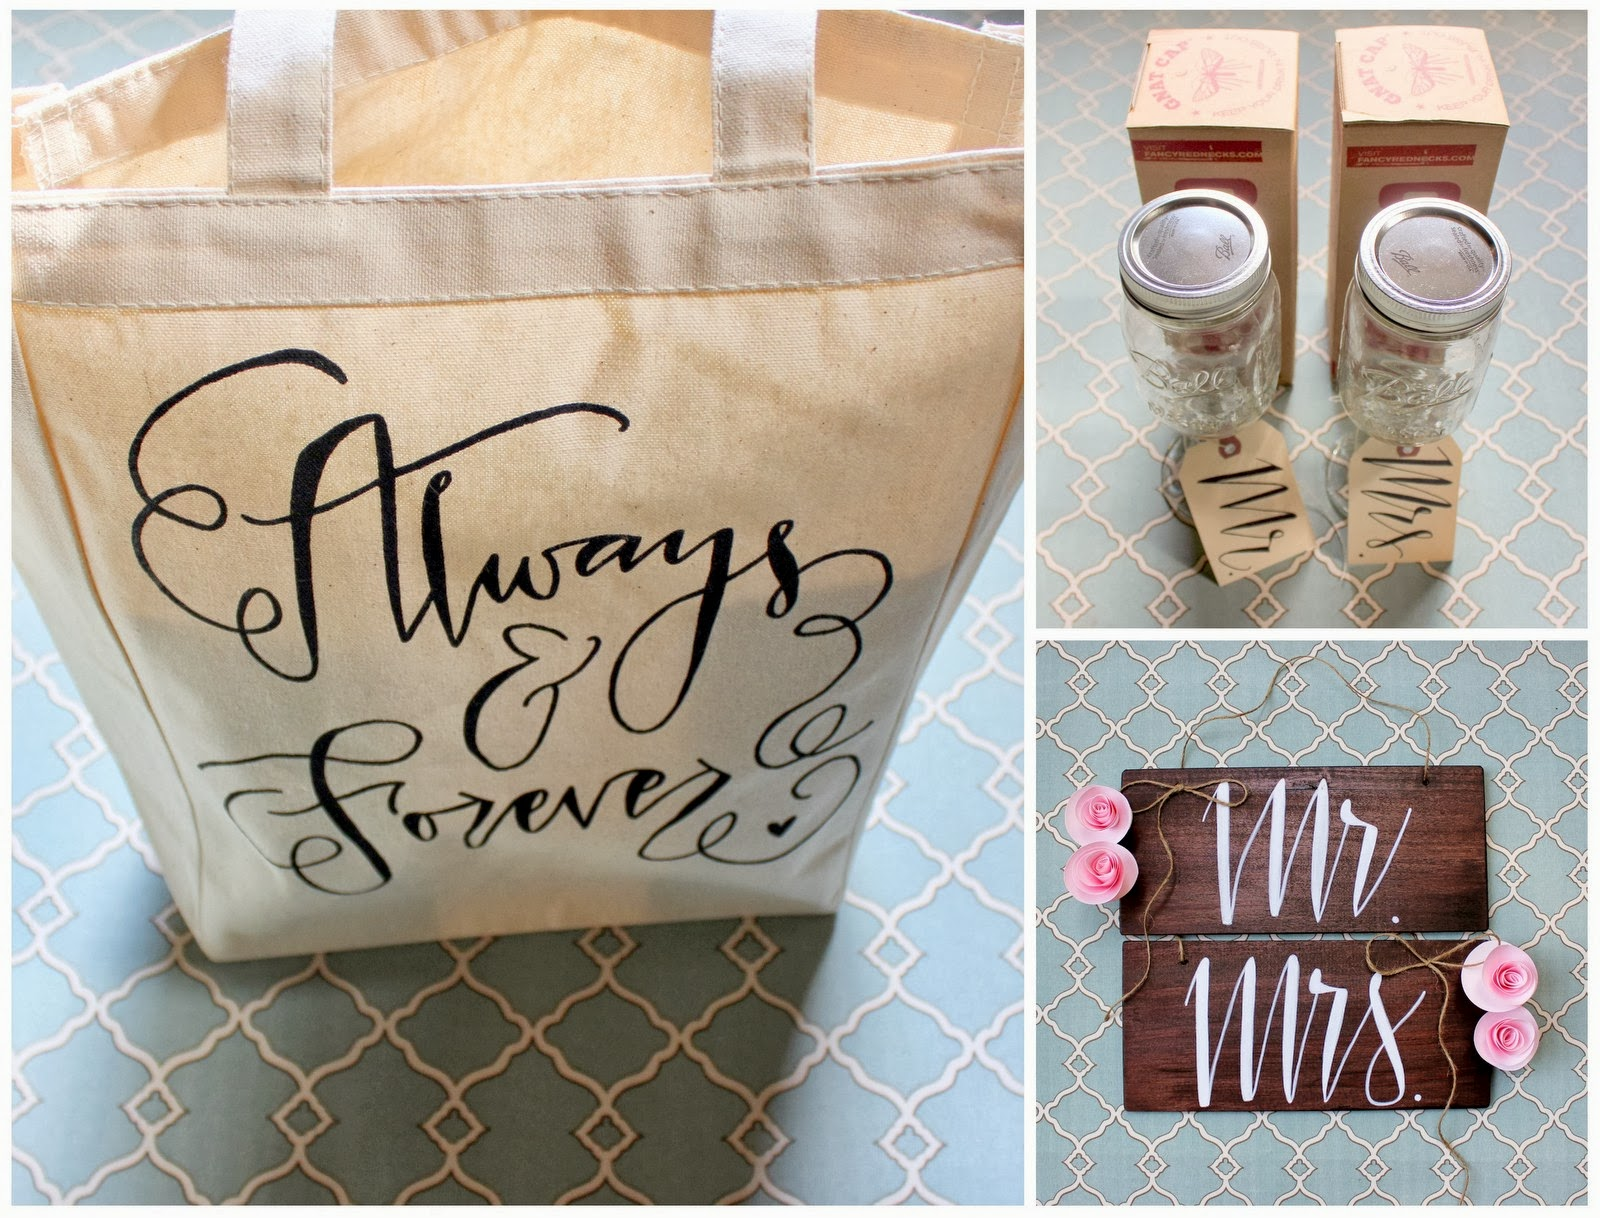 Dream State: Dan & Brittney's Engagement Party & Gift Ideas